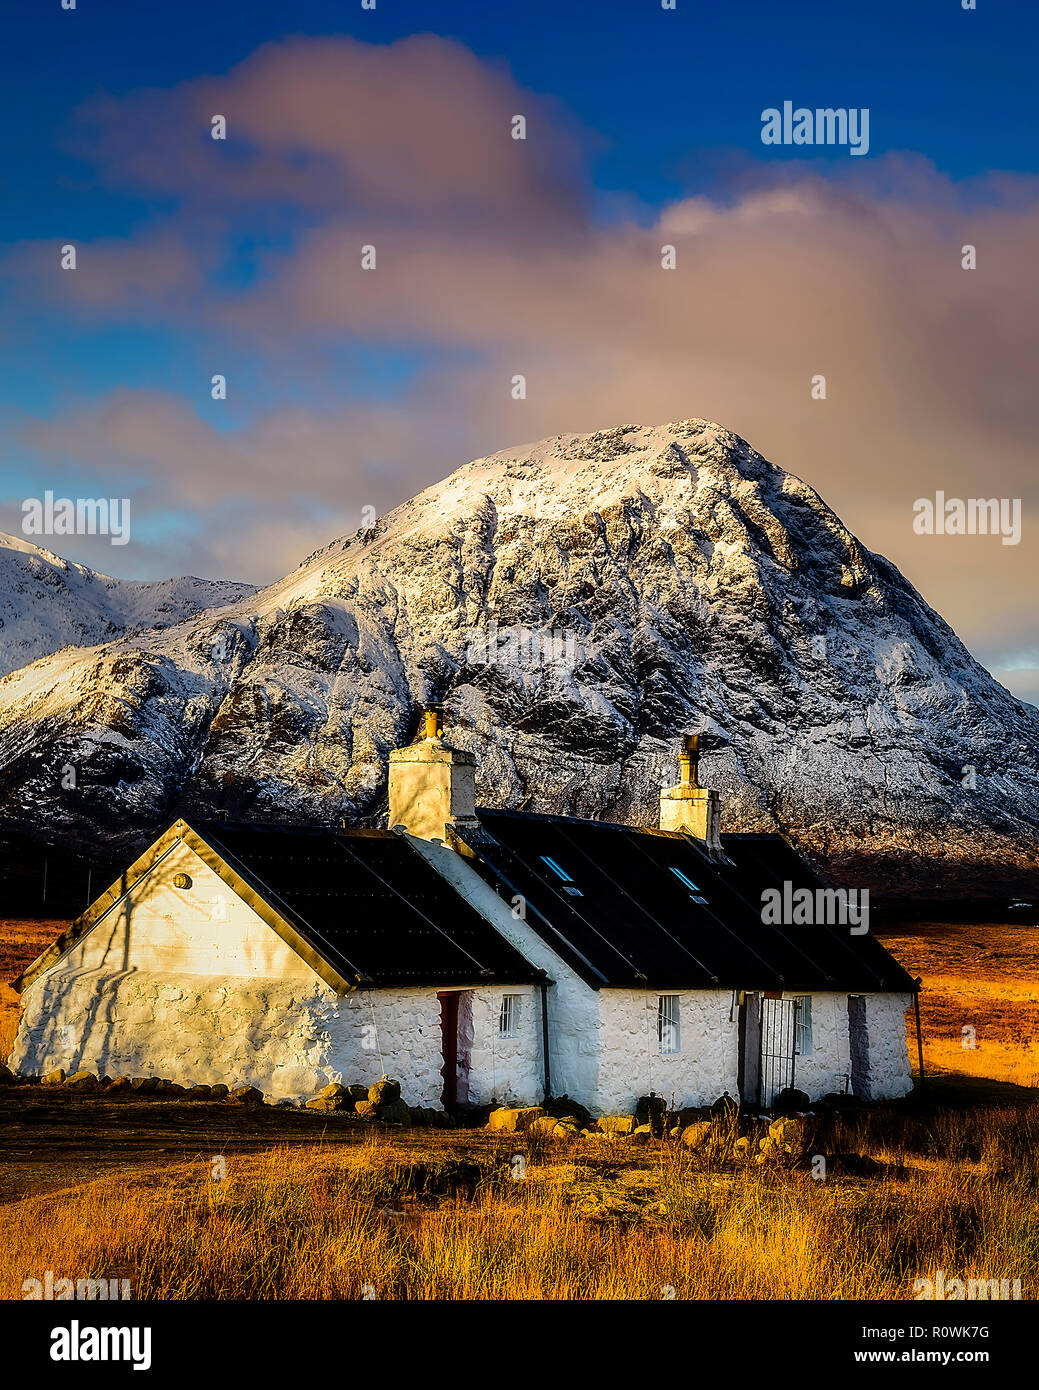 Black Rock Cottage, Glen Coe, Scotland - Stock Image